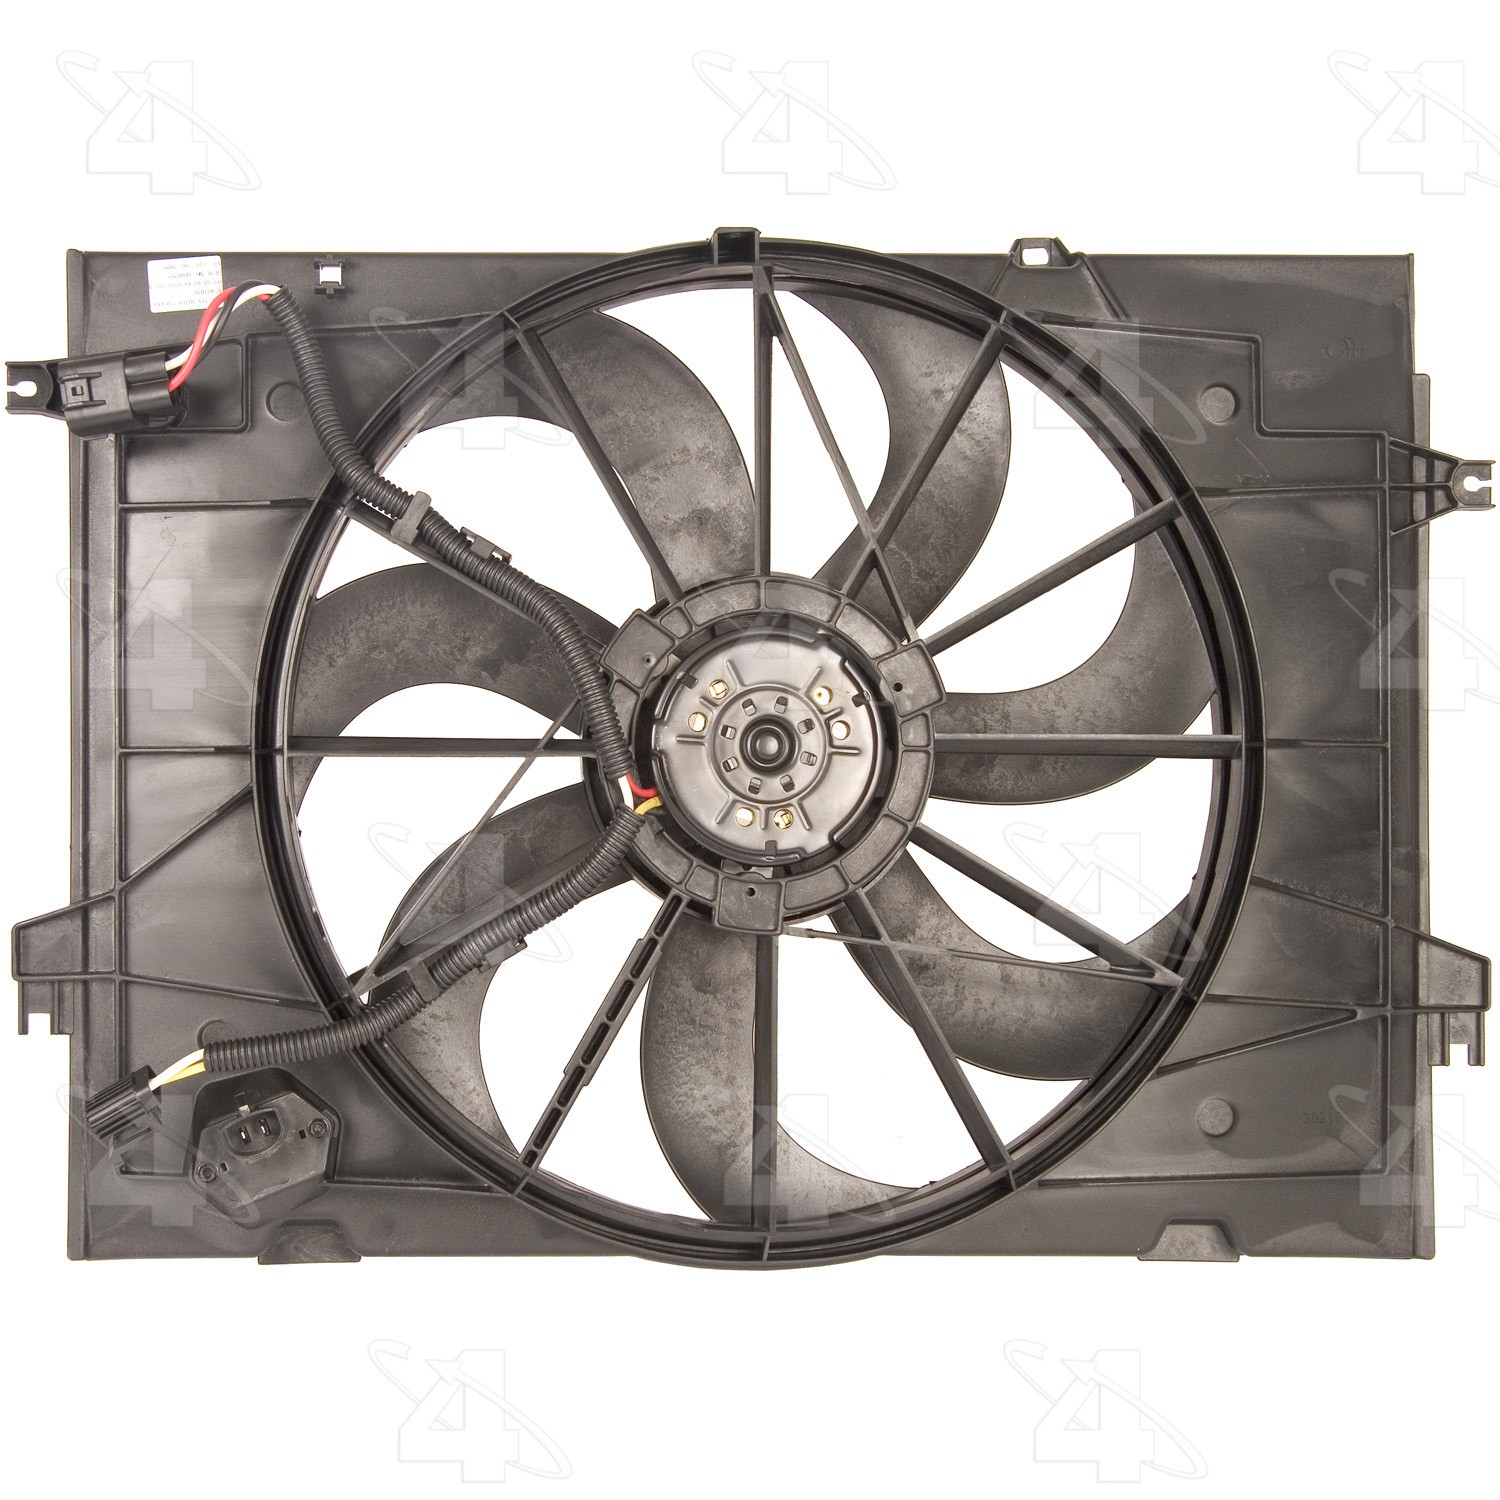 hight resolution of 2007 hyundai tucson engine cooling fan assembly fs 75637